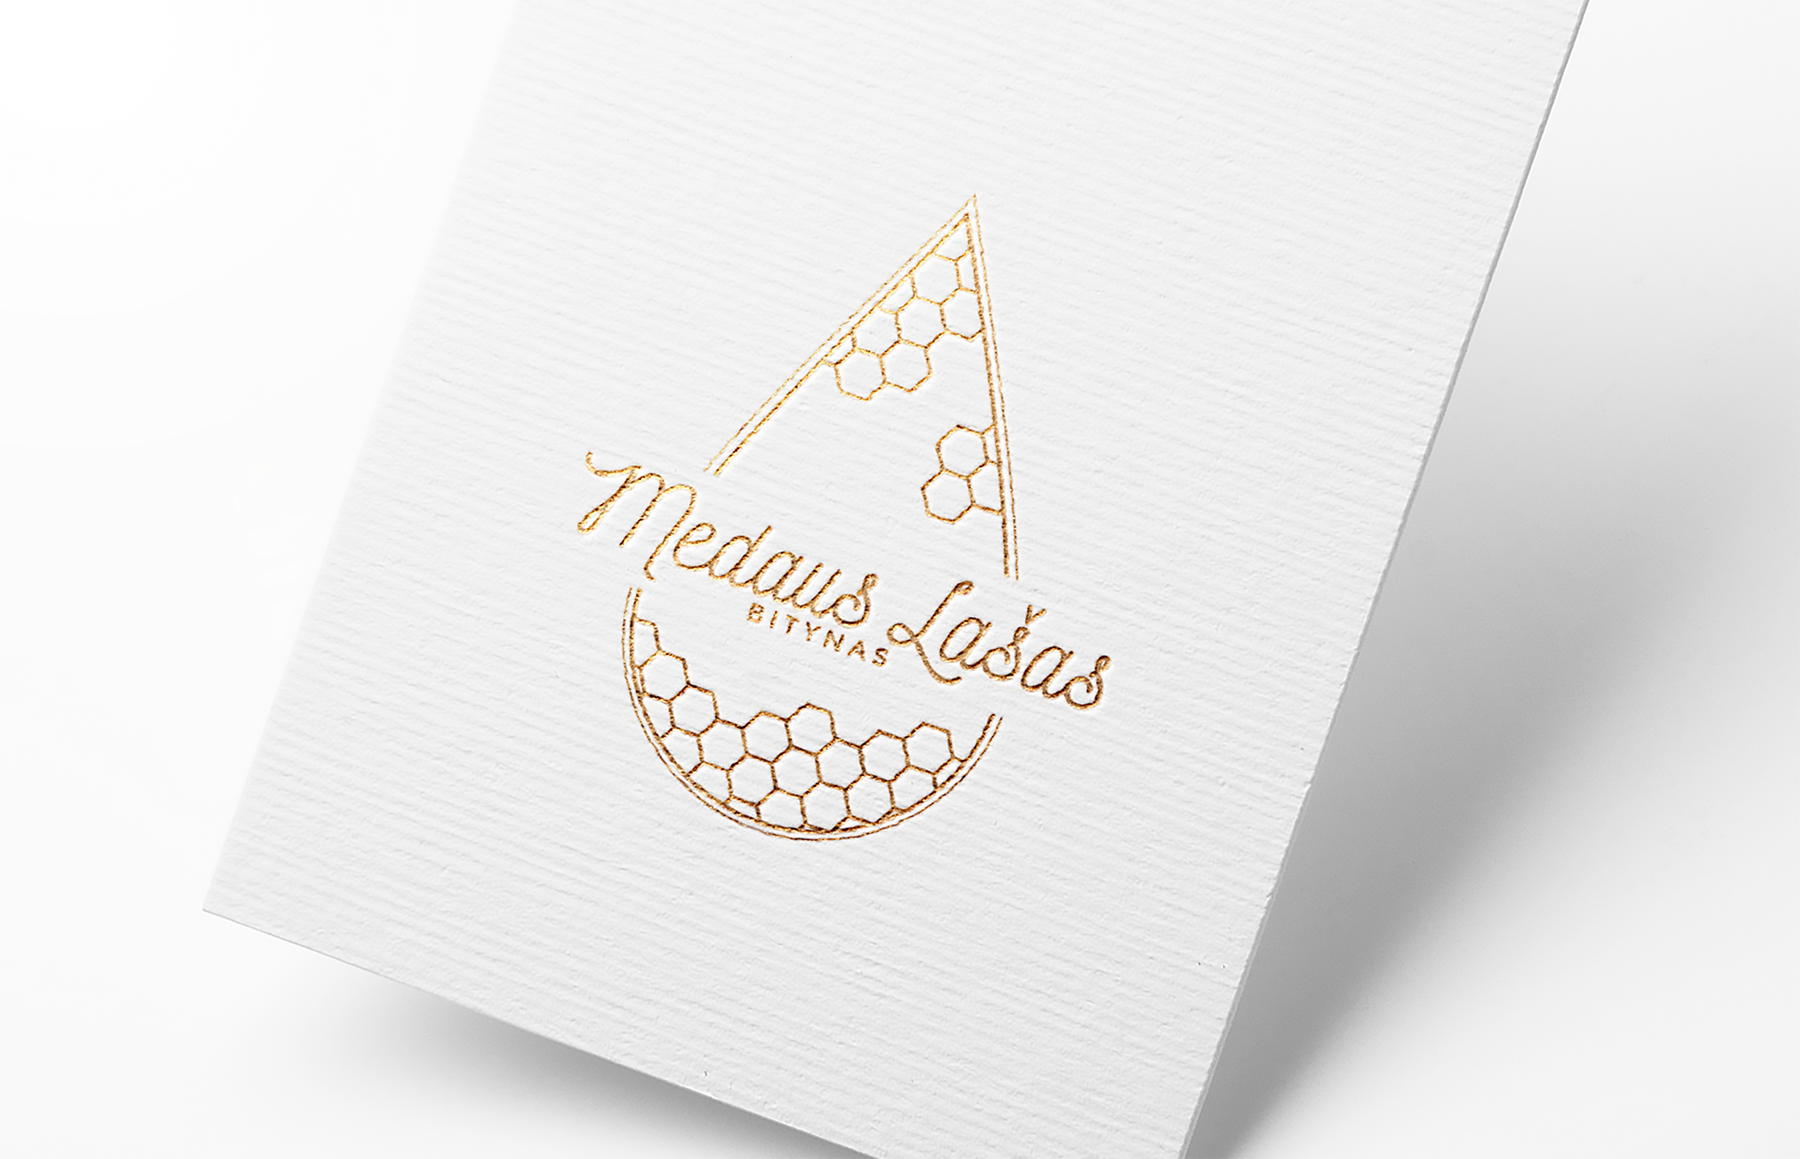 creative logo design for apiary Medaus Lasas by wondersomethings